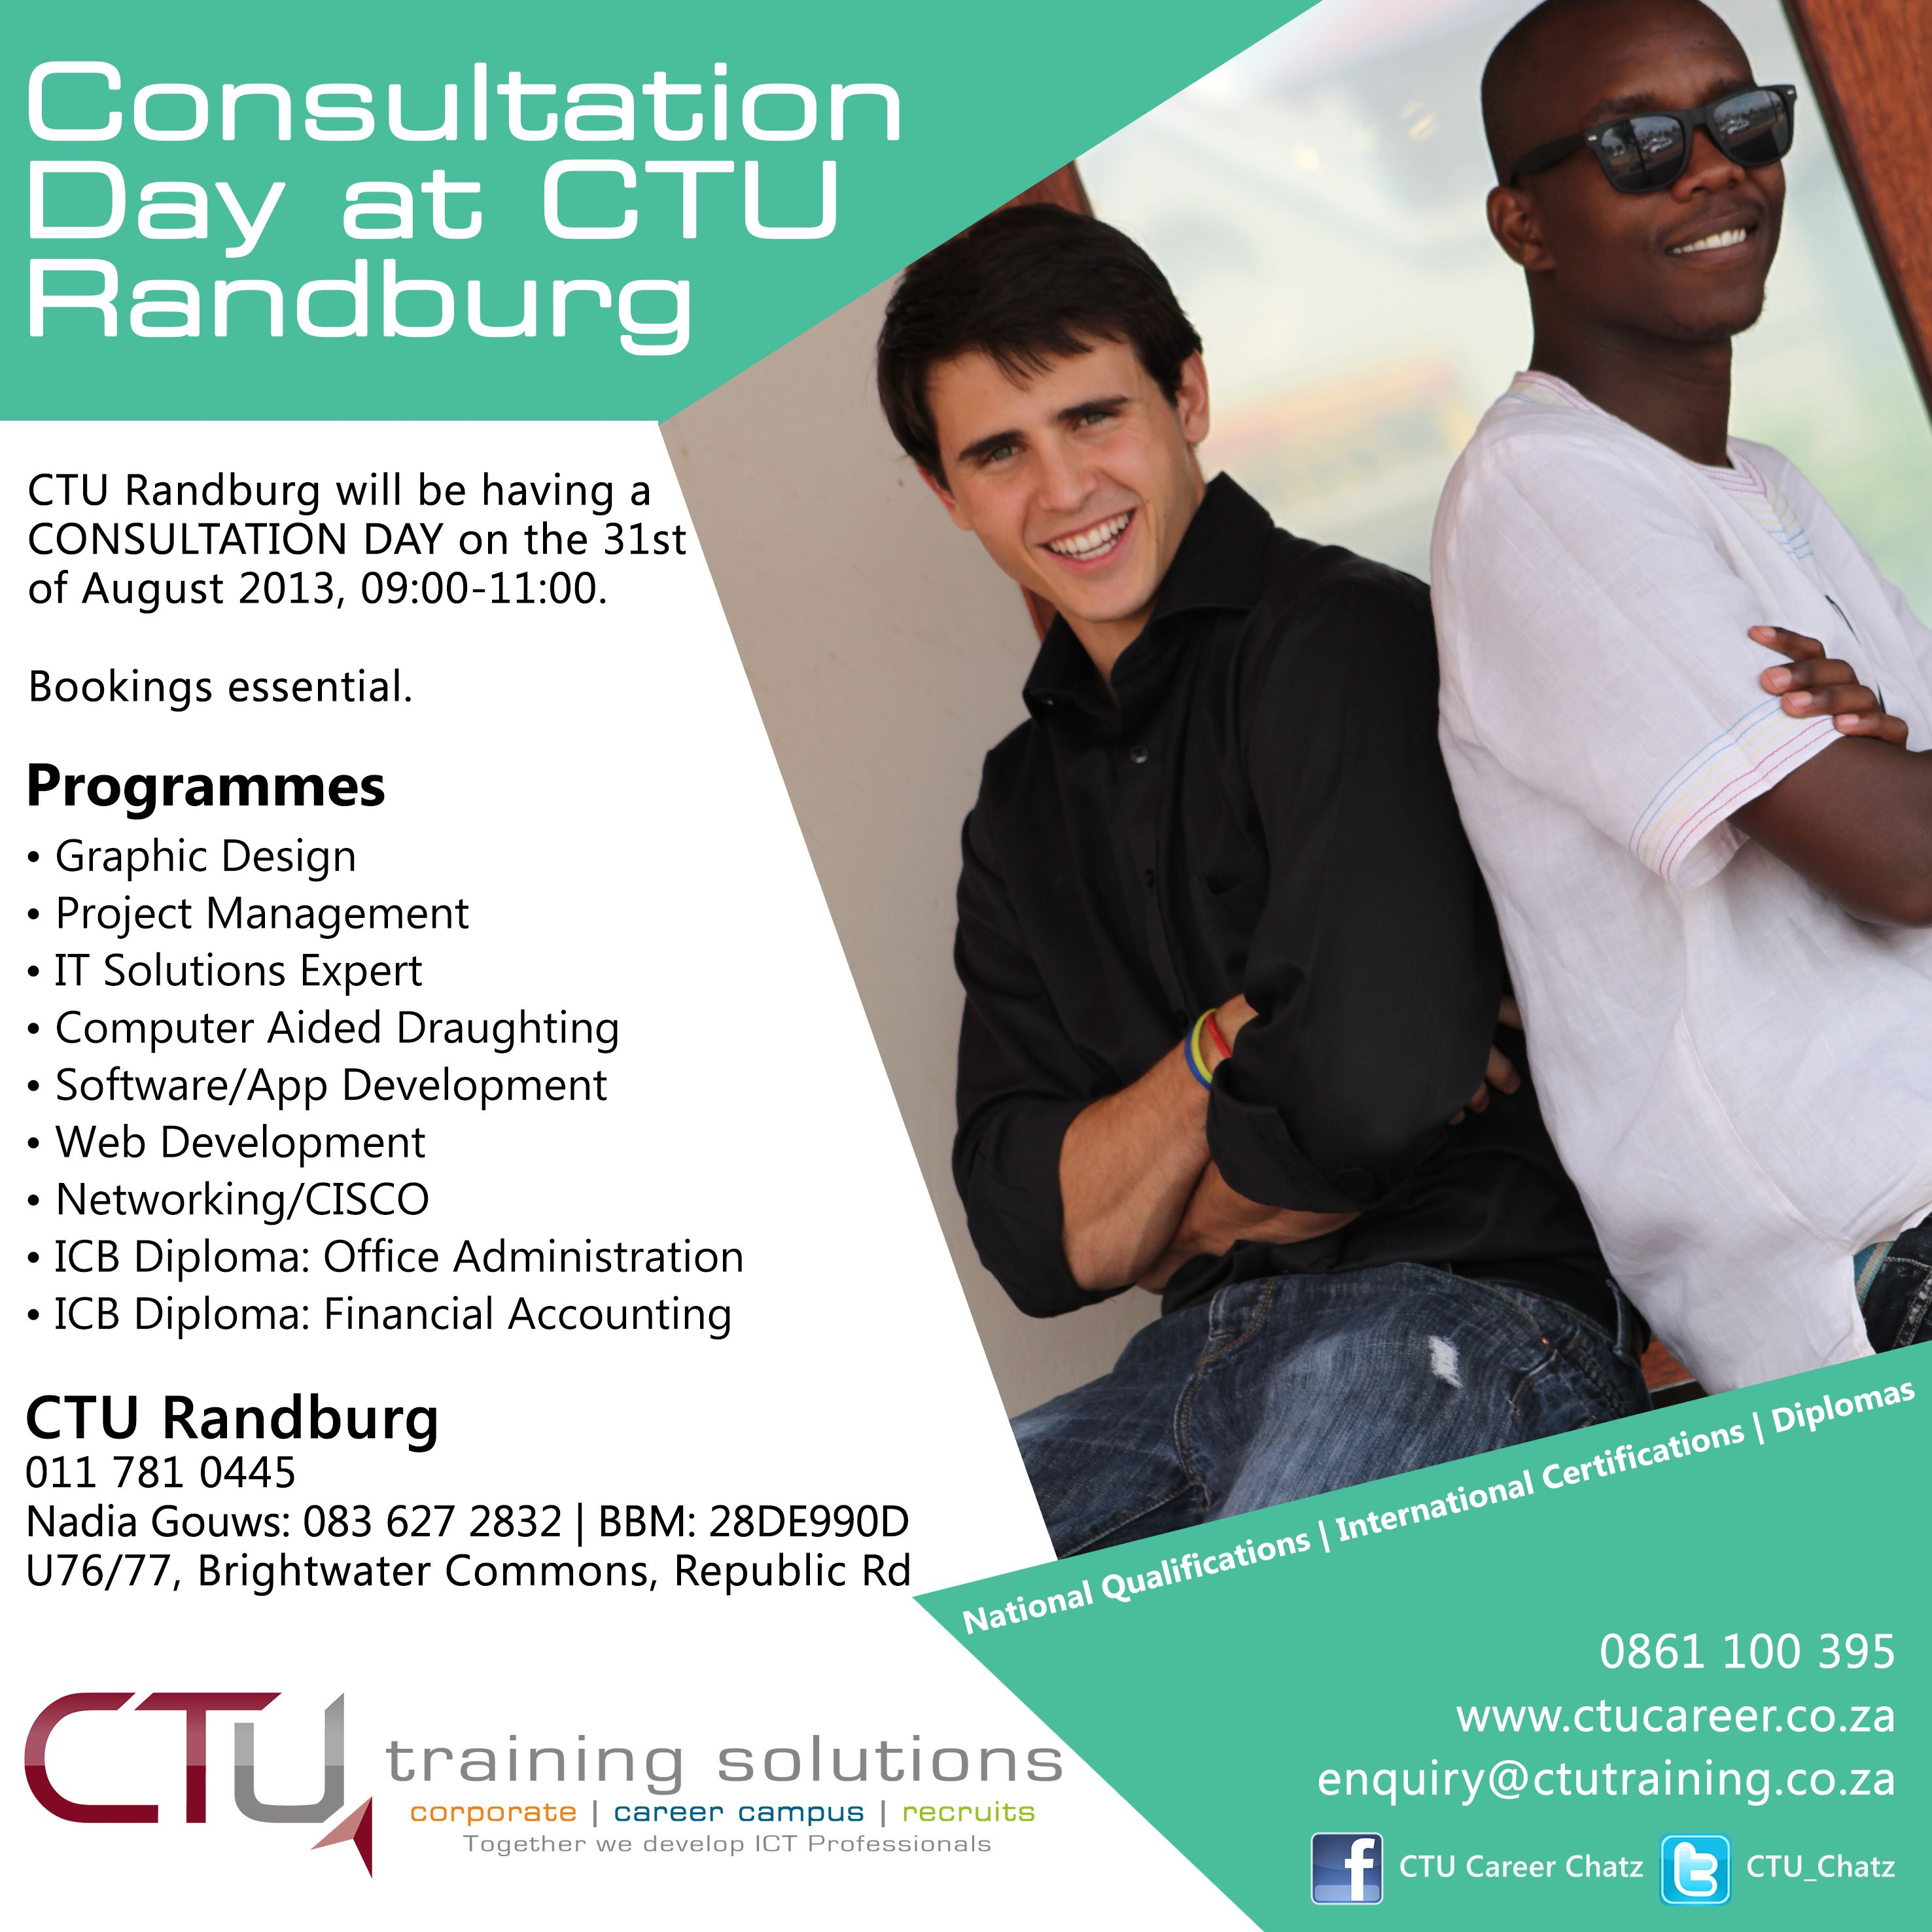 Ctu Randburg Consultation Day Drafting Software Computer Aided Drafting Graphic Design Projects